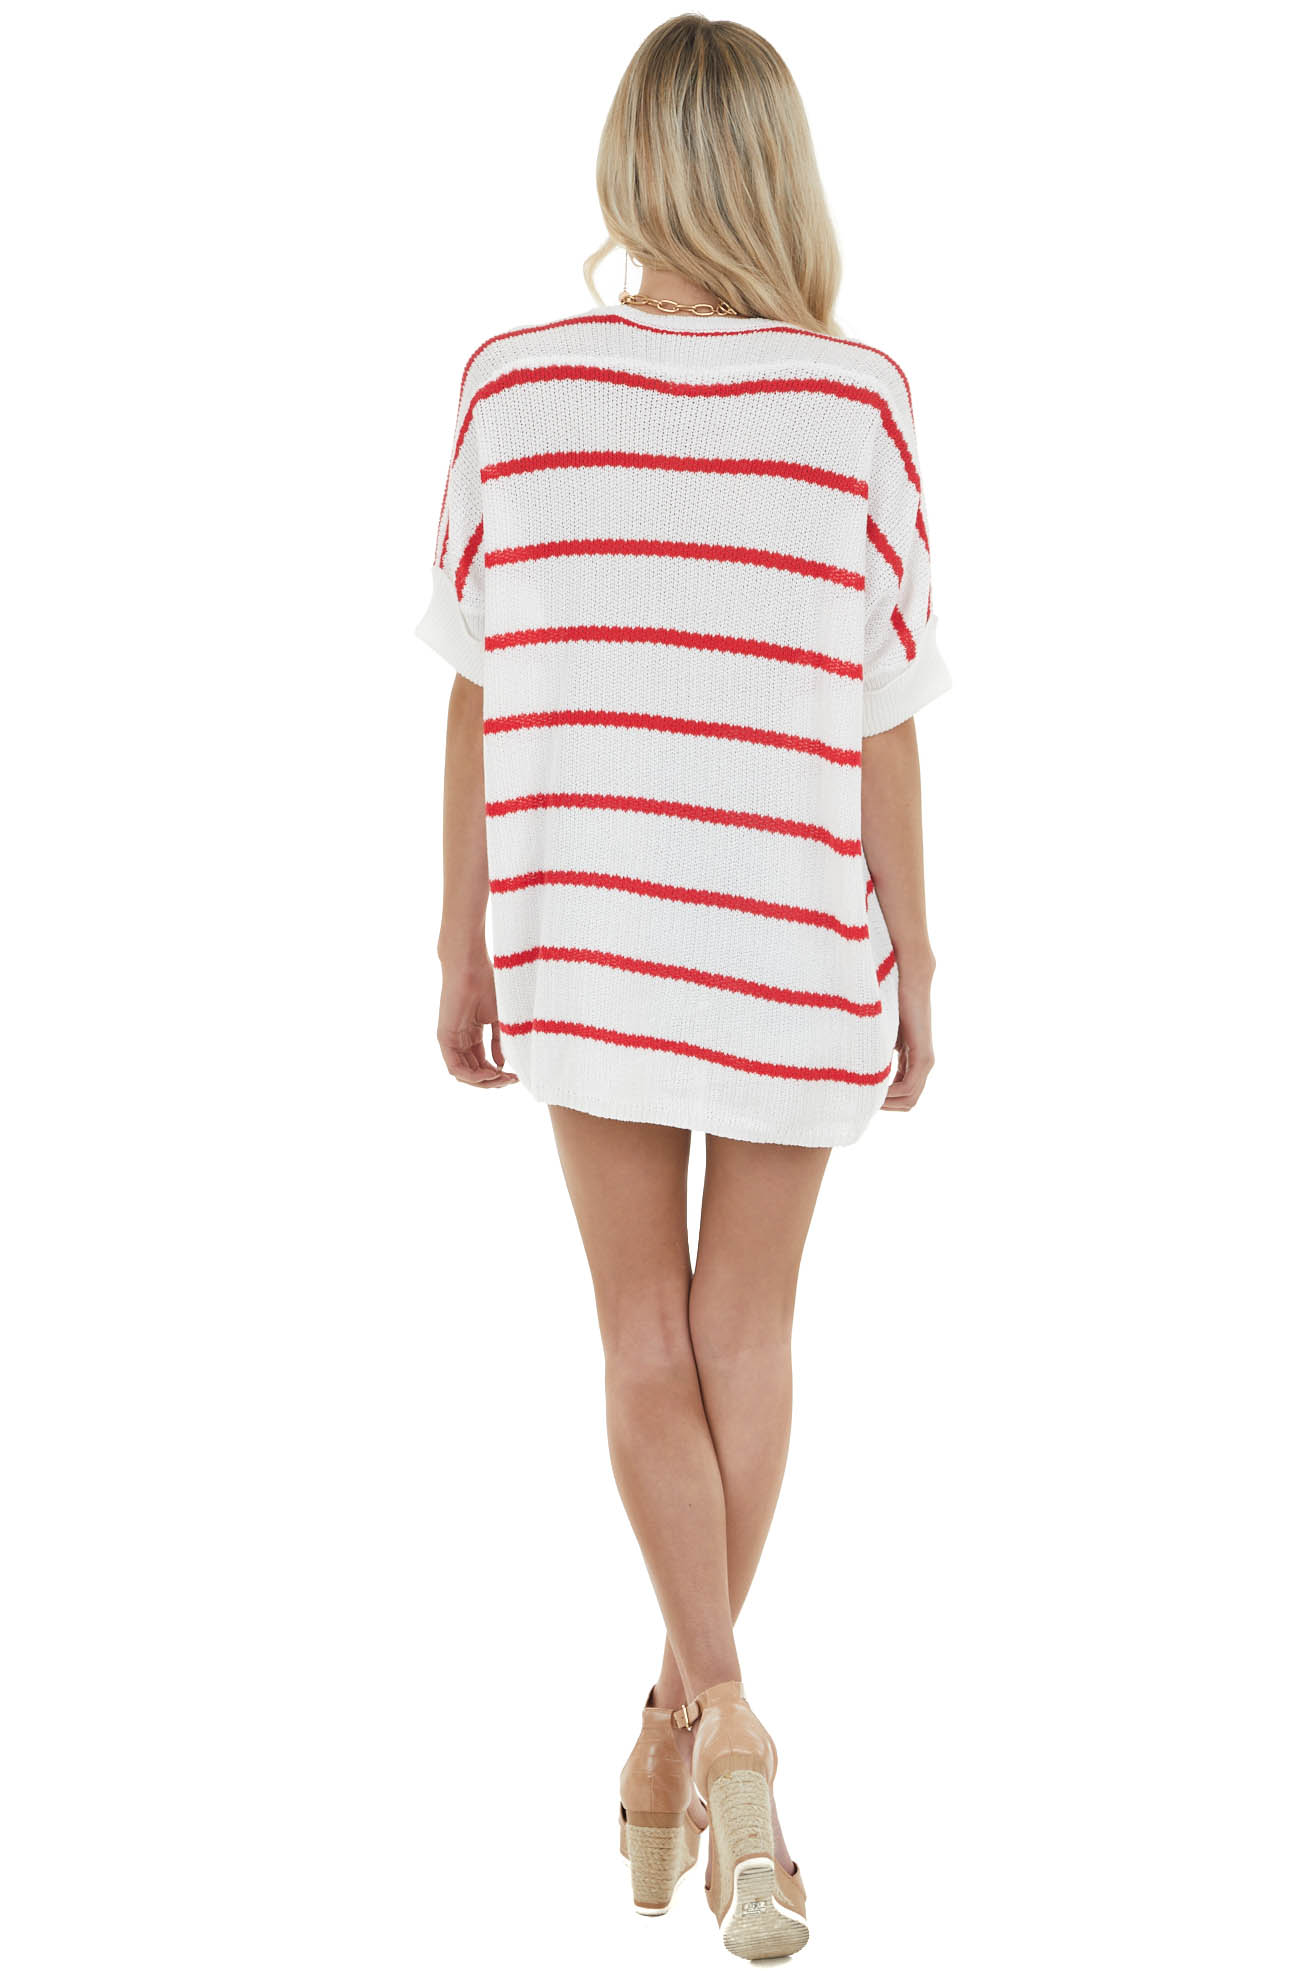 Candy Apple Red Striped Short Sleeve Lightweight Sweater